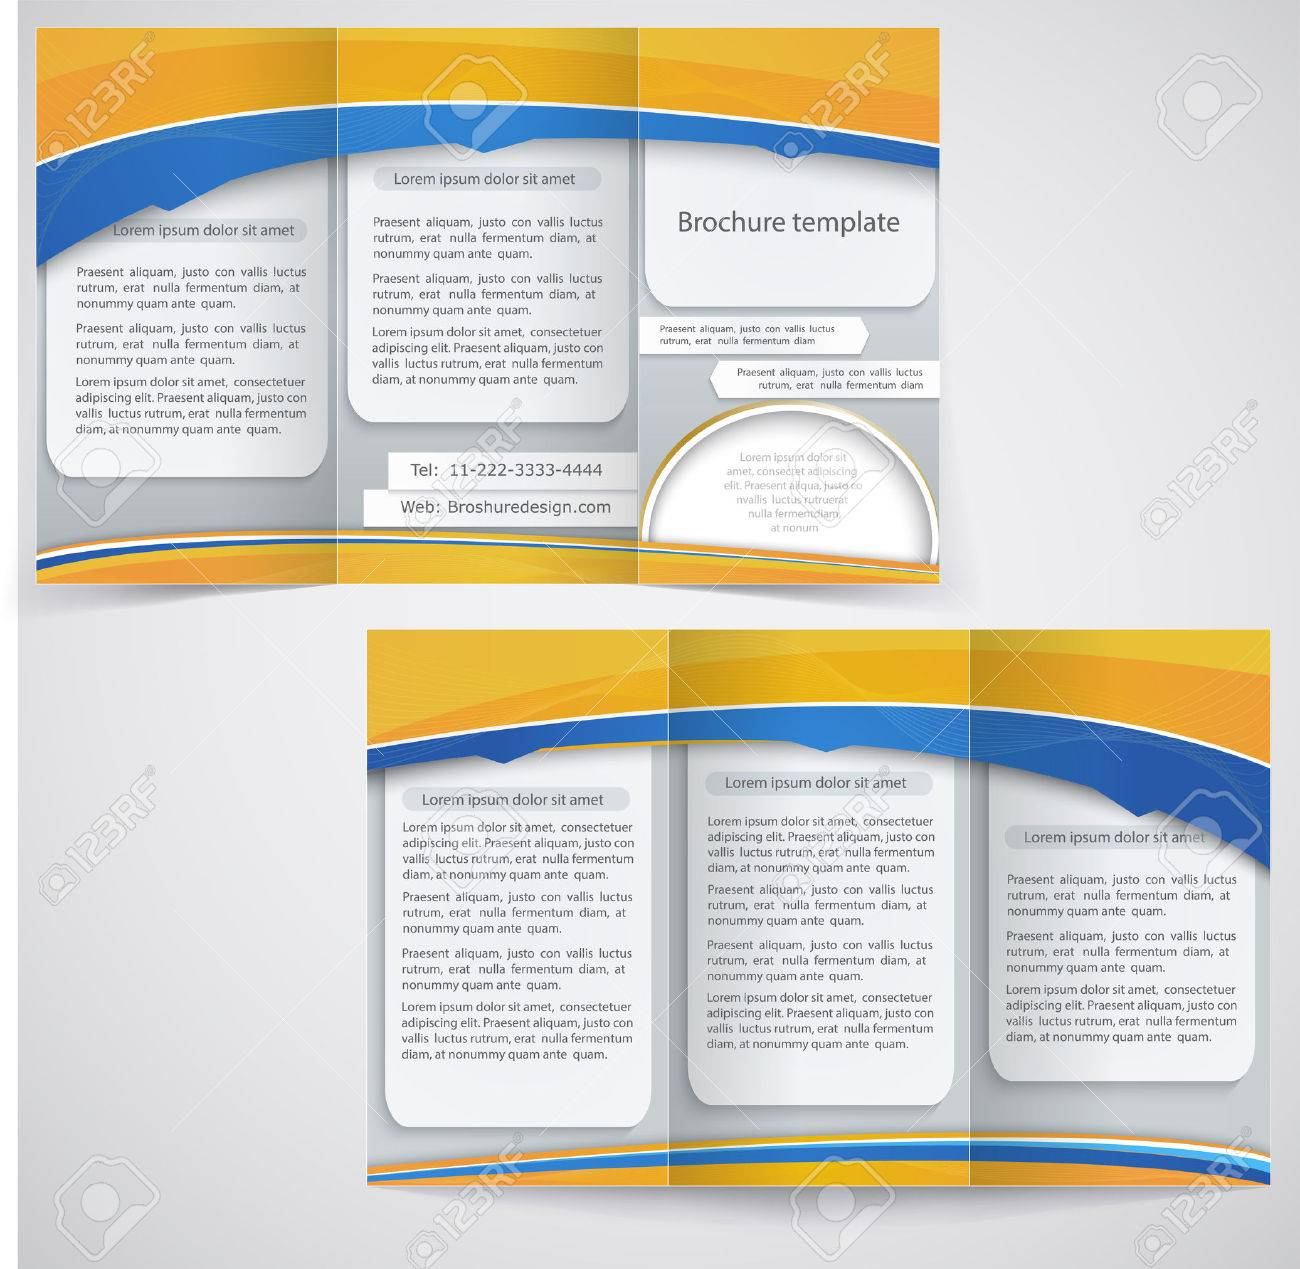 Vector Blue Brochure Layout Design With Yellow Elements Business - Brochure layout template